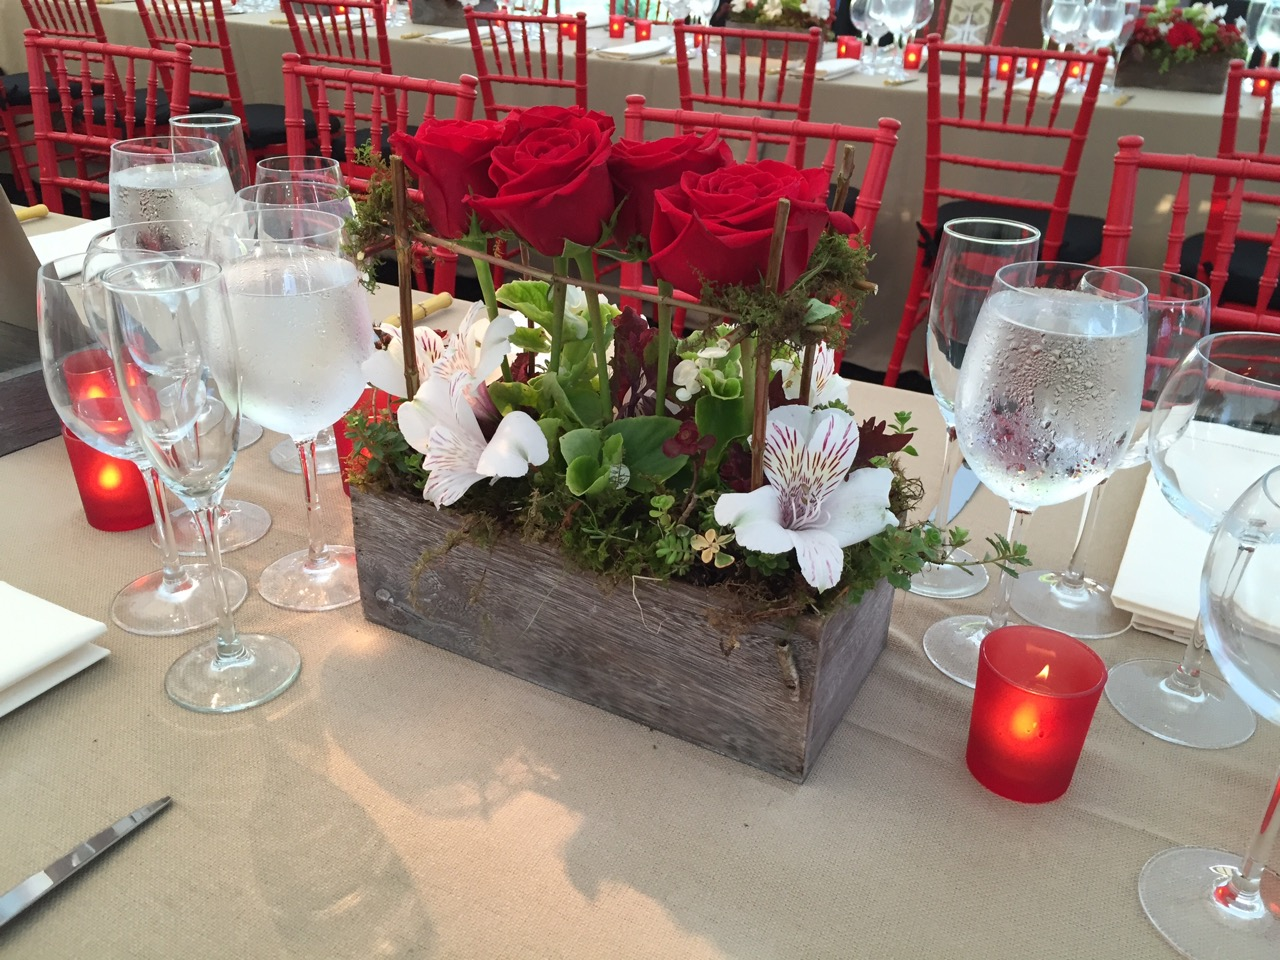 Tablescape with faux burlap linens, red frosted candle holders, and red chiavari chairs